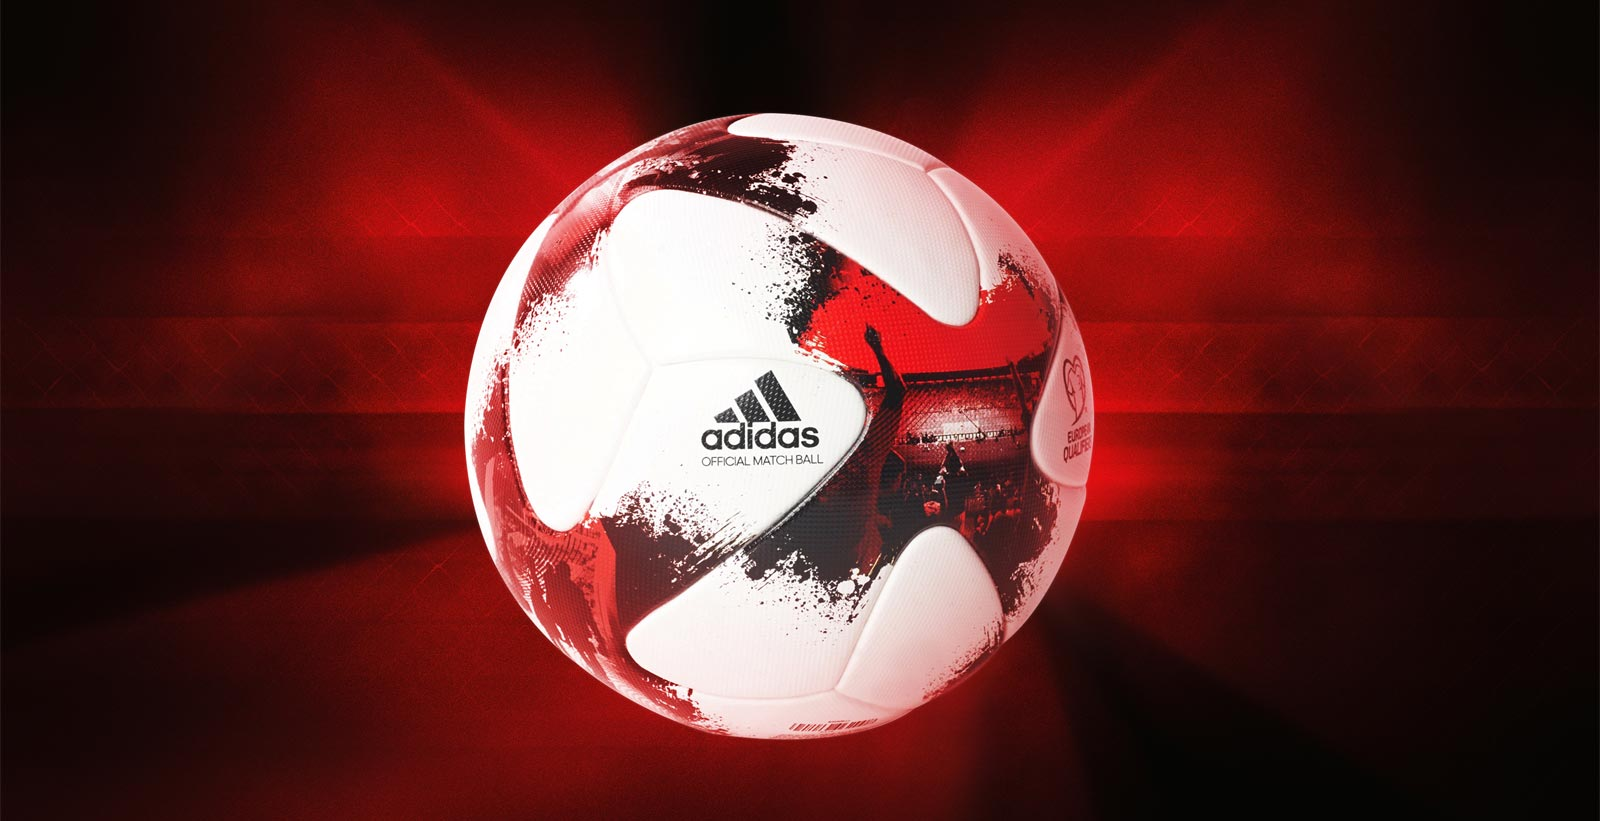 World Cup 2018 Qualifiers Ball